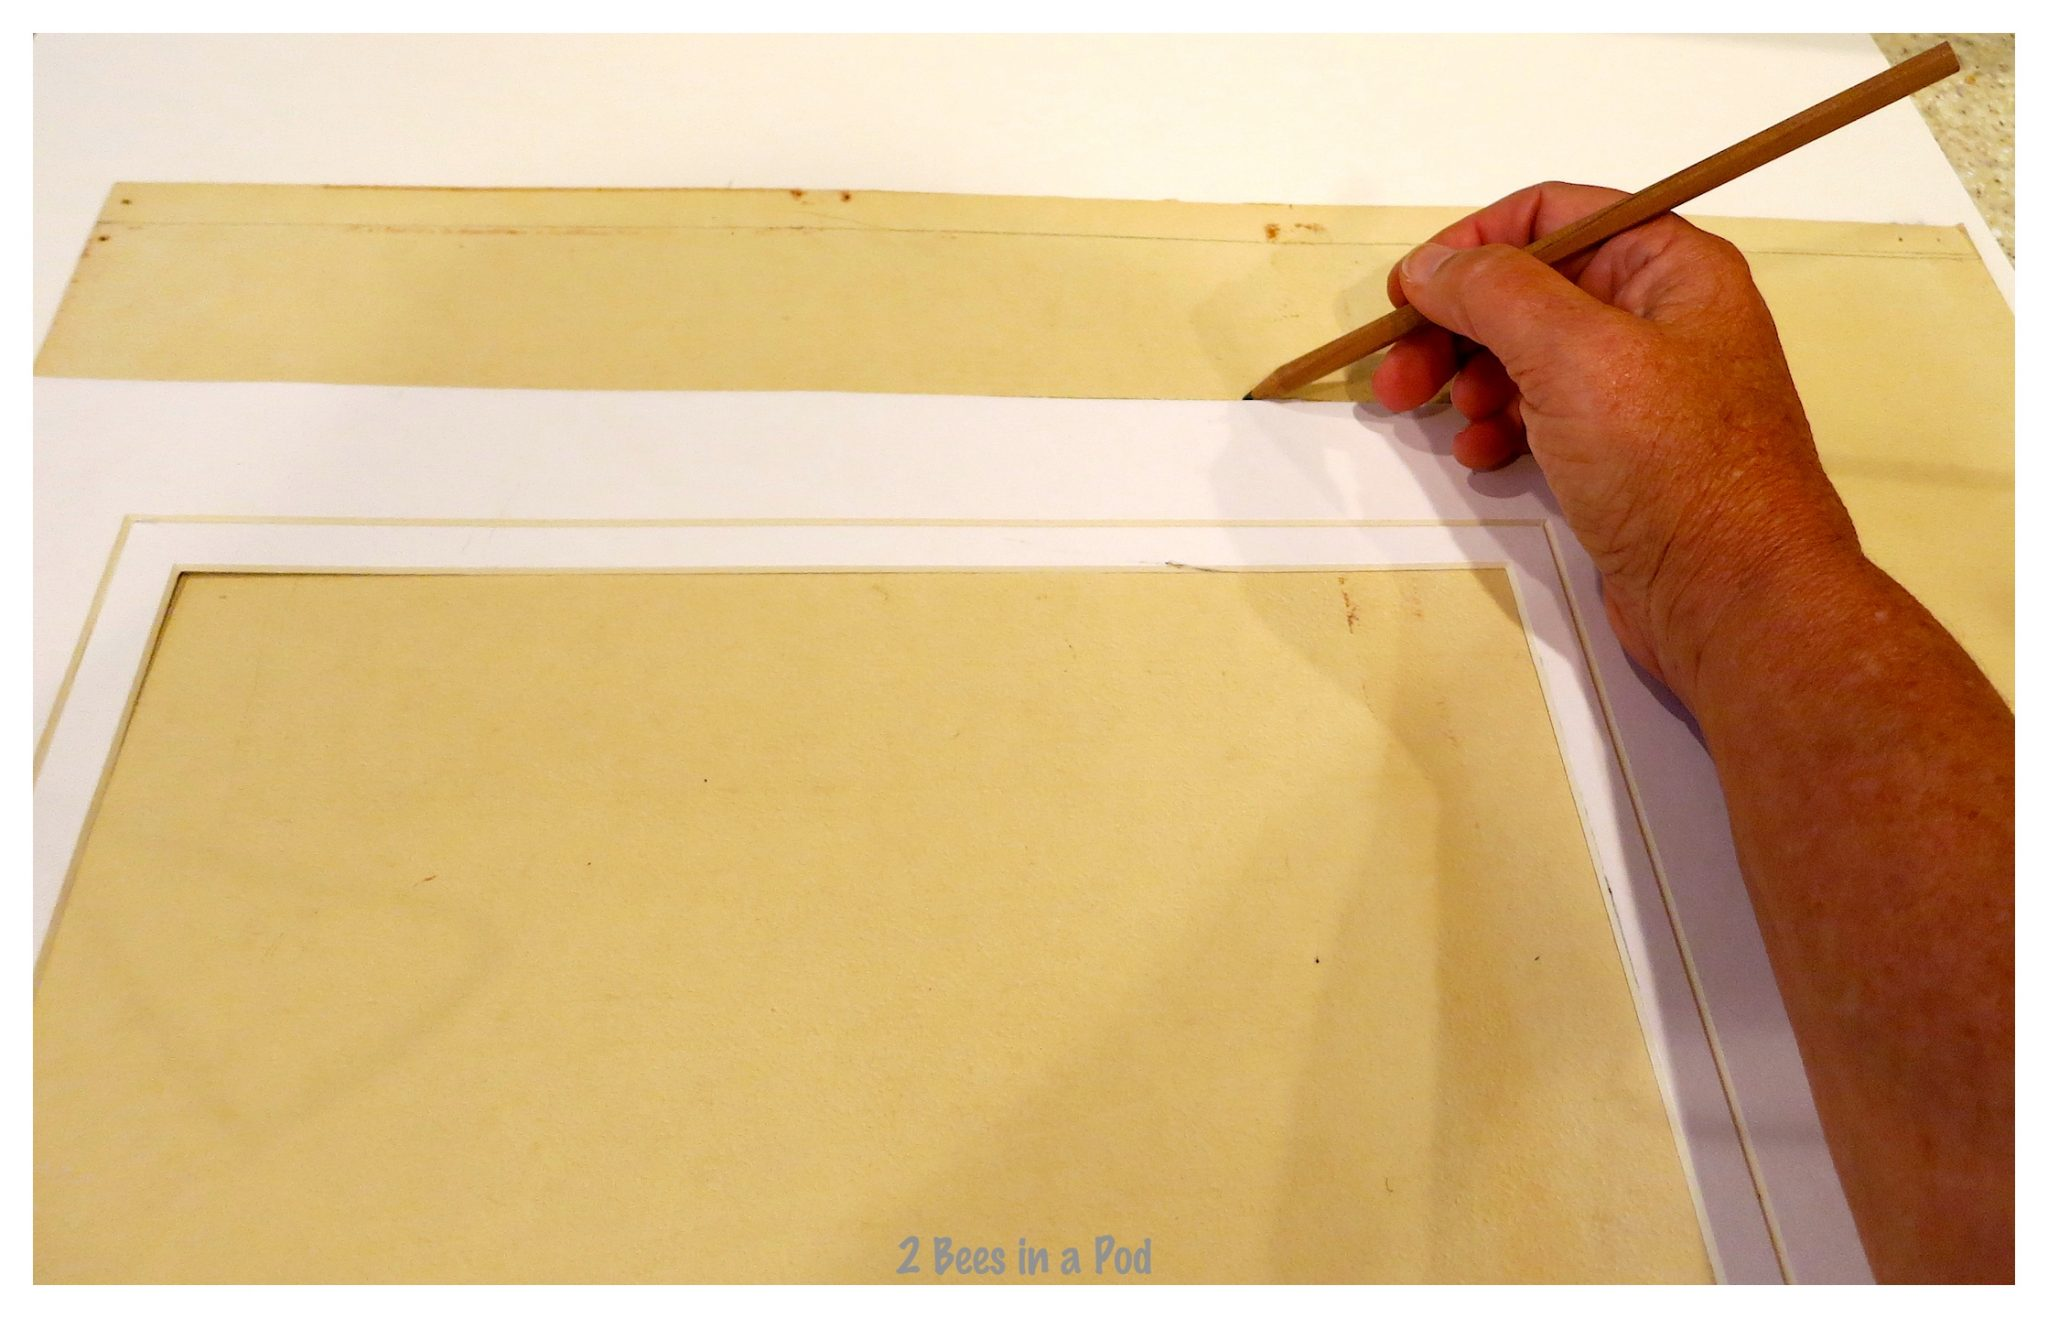 Cutting out the foundation backing for the pocket board project. Repurposed and Transformed a 10 cent garage sale frame.